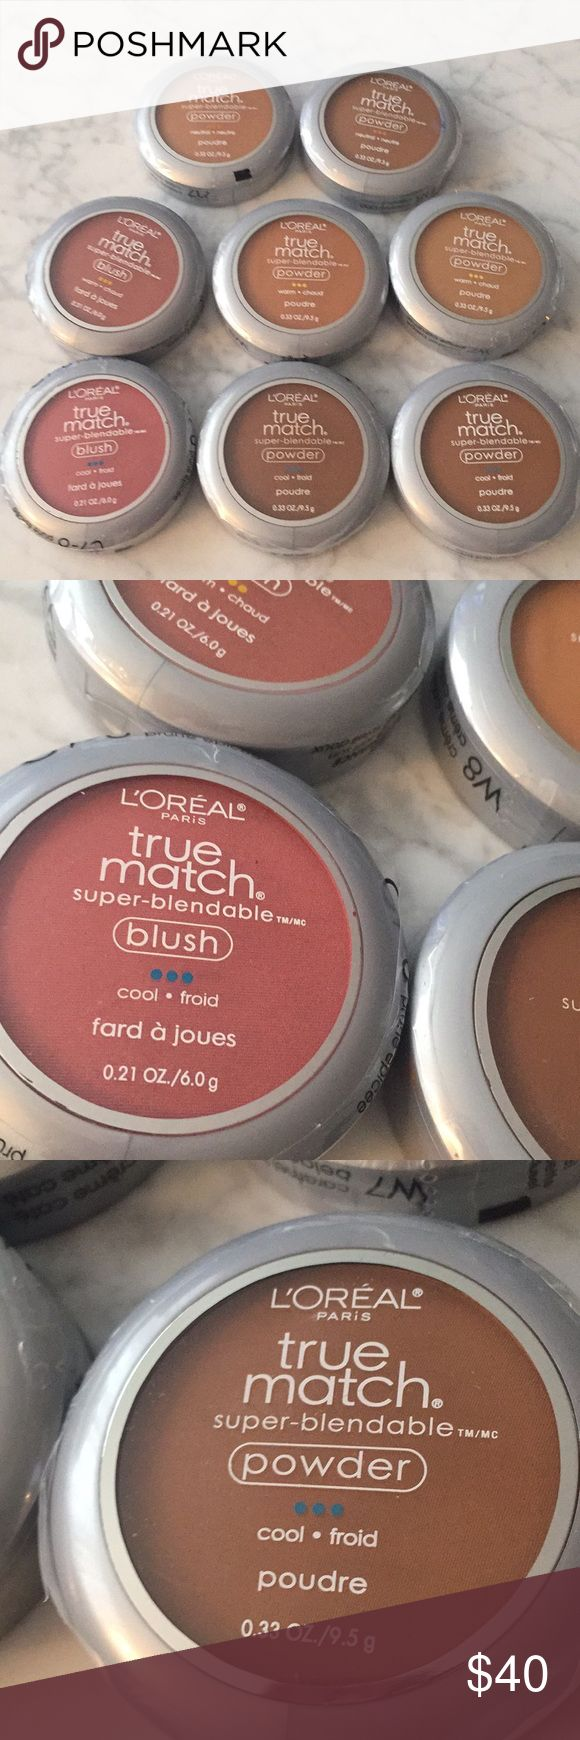 NEW - Lot of 8 L'Oreal Powders for dark skin tones NEW - Lot of 8 L'Oreal Powders for Dark Skin tones. All brand new, never opened, in original plastic. 6 of these are powders with Applicators, 2 are powder blush. Colors are between 7-8 in the L'Oreal TrueMatch line, and include Warm, Neutral, and Cool tones. Colors are blushes W7-8 and C7-8, and powders C7, C8, W7, W8, N7 and N8.  Great for makeup artists looking for a range of shades. I have similar listings for light, medium and darker…